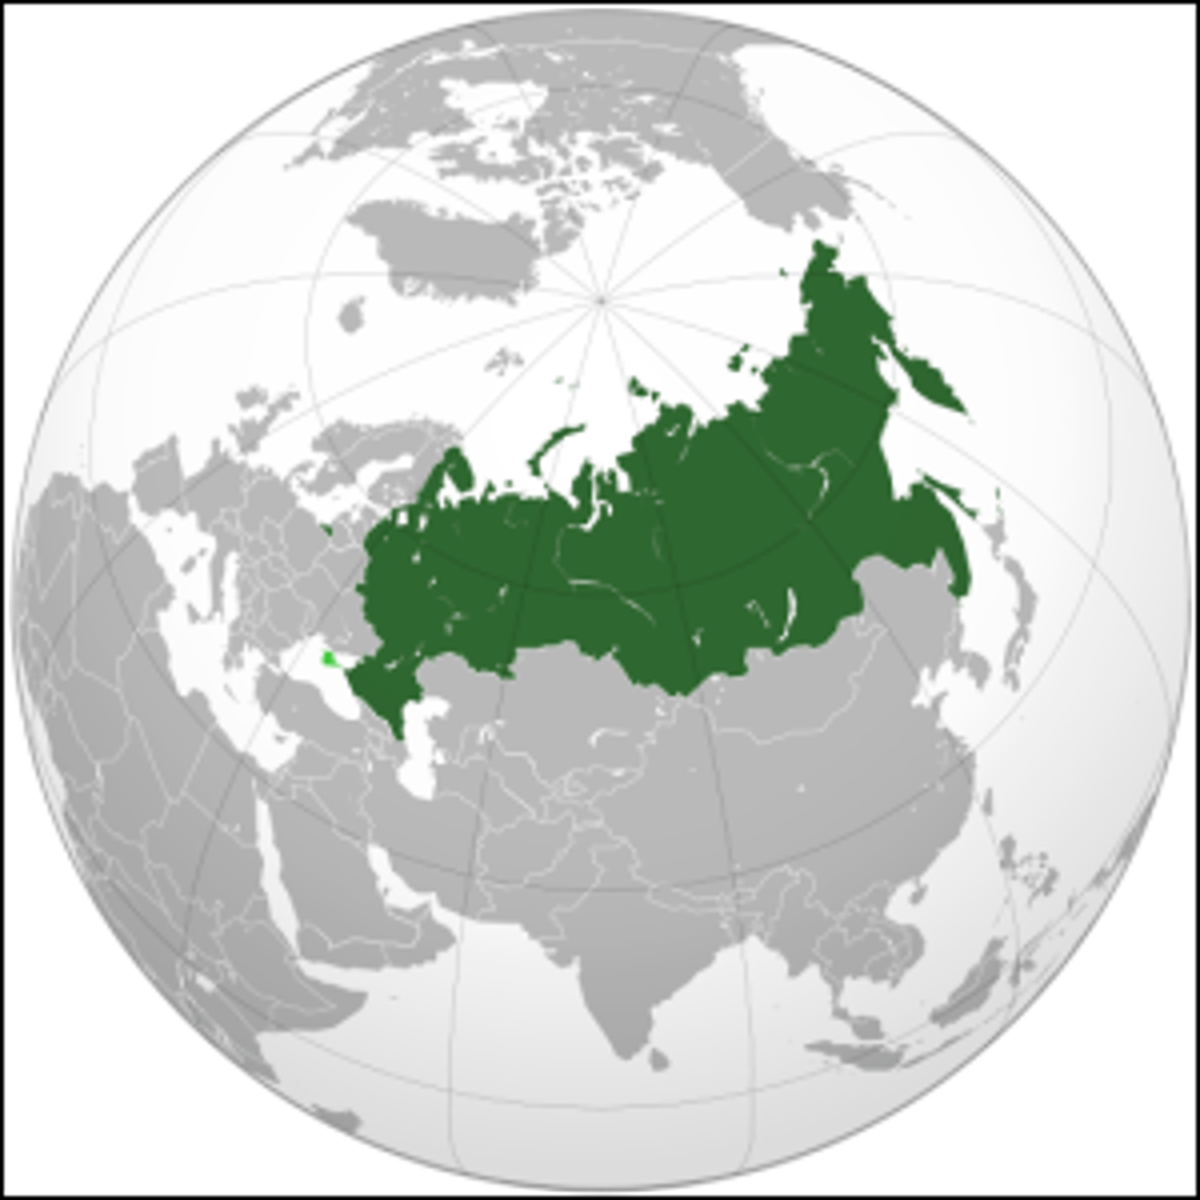 A map of the Russian Federation.